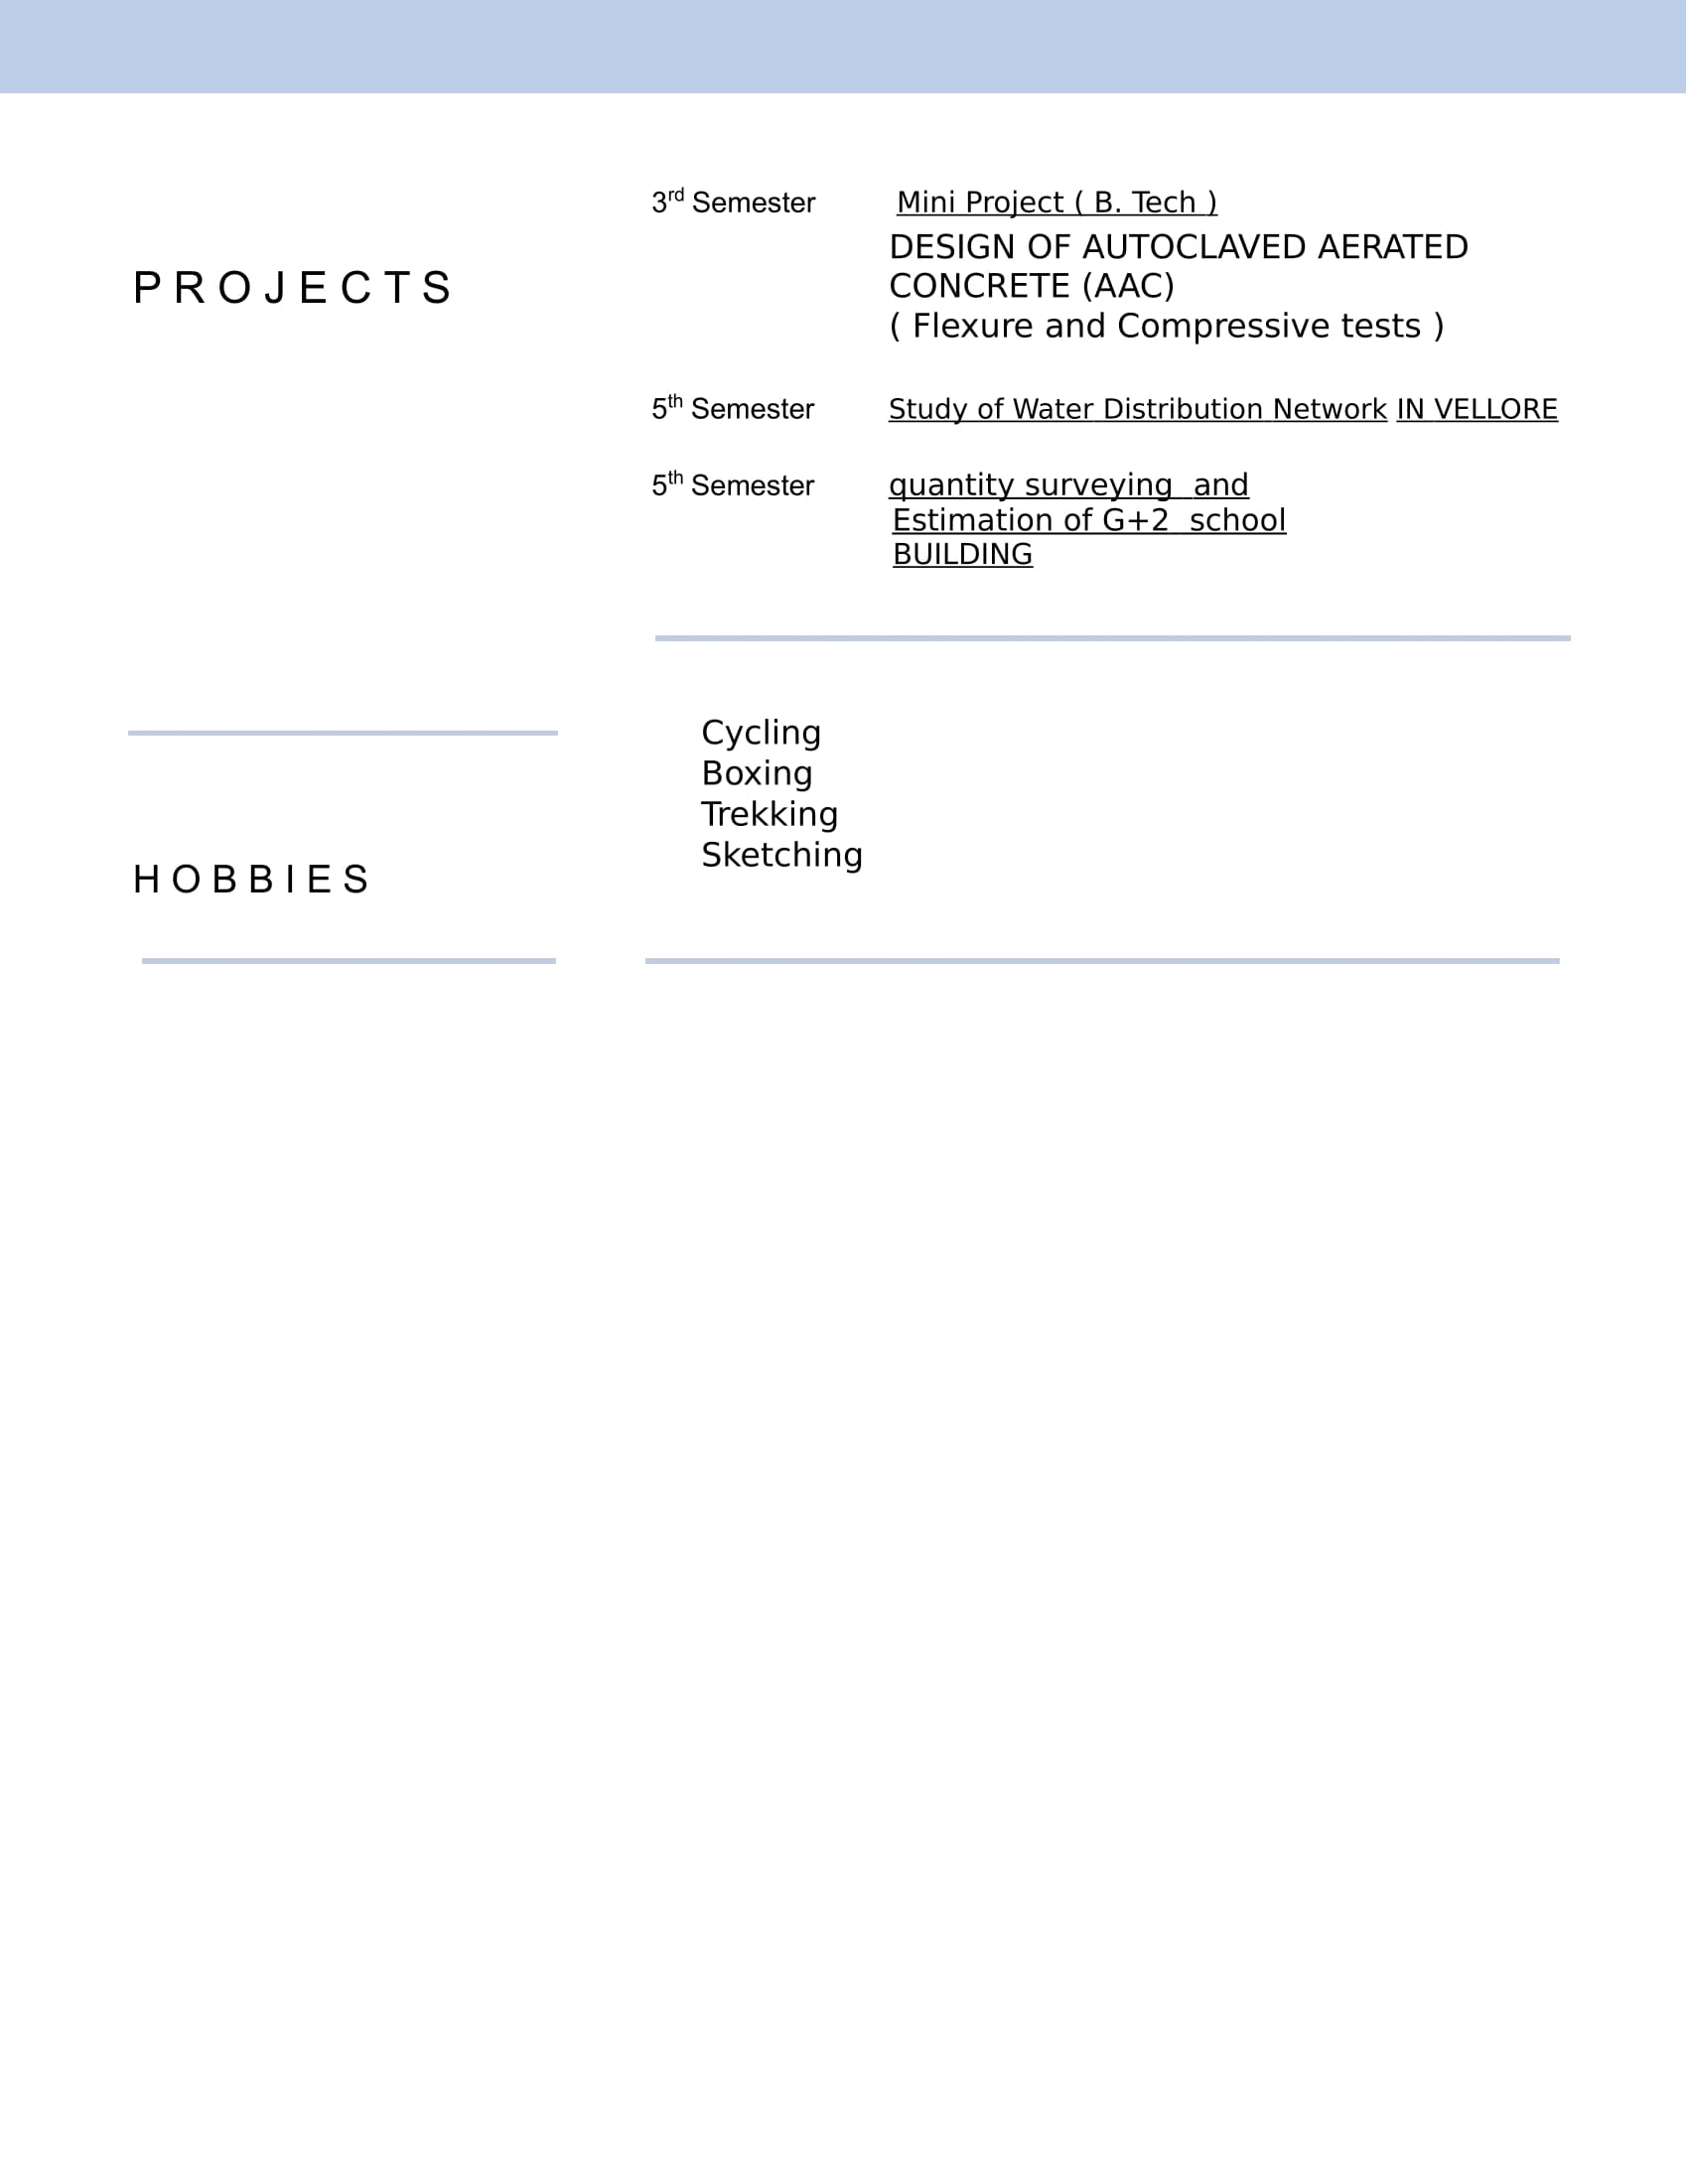 Civil Estimator Cover Letter Resume Templates For Civil Engineer Freshers Download Free